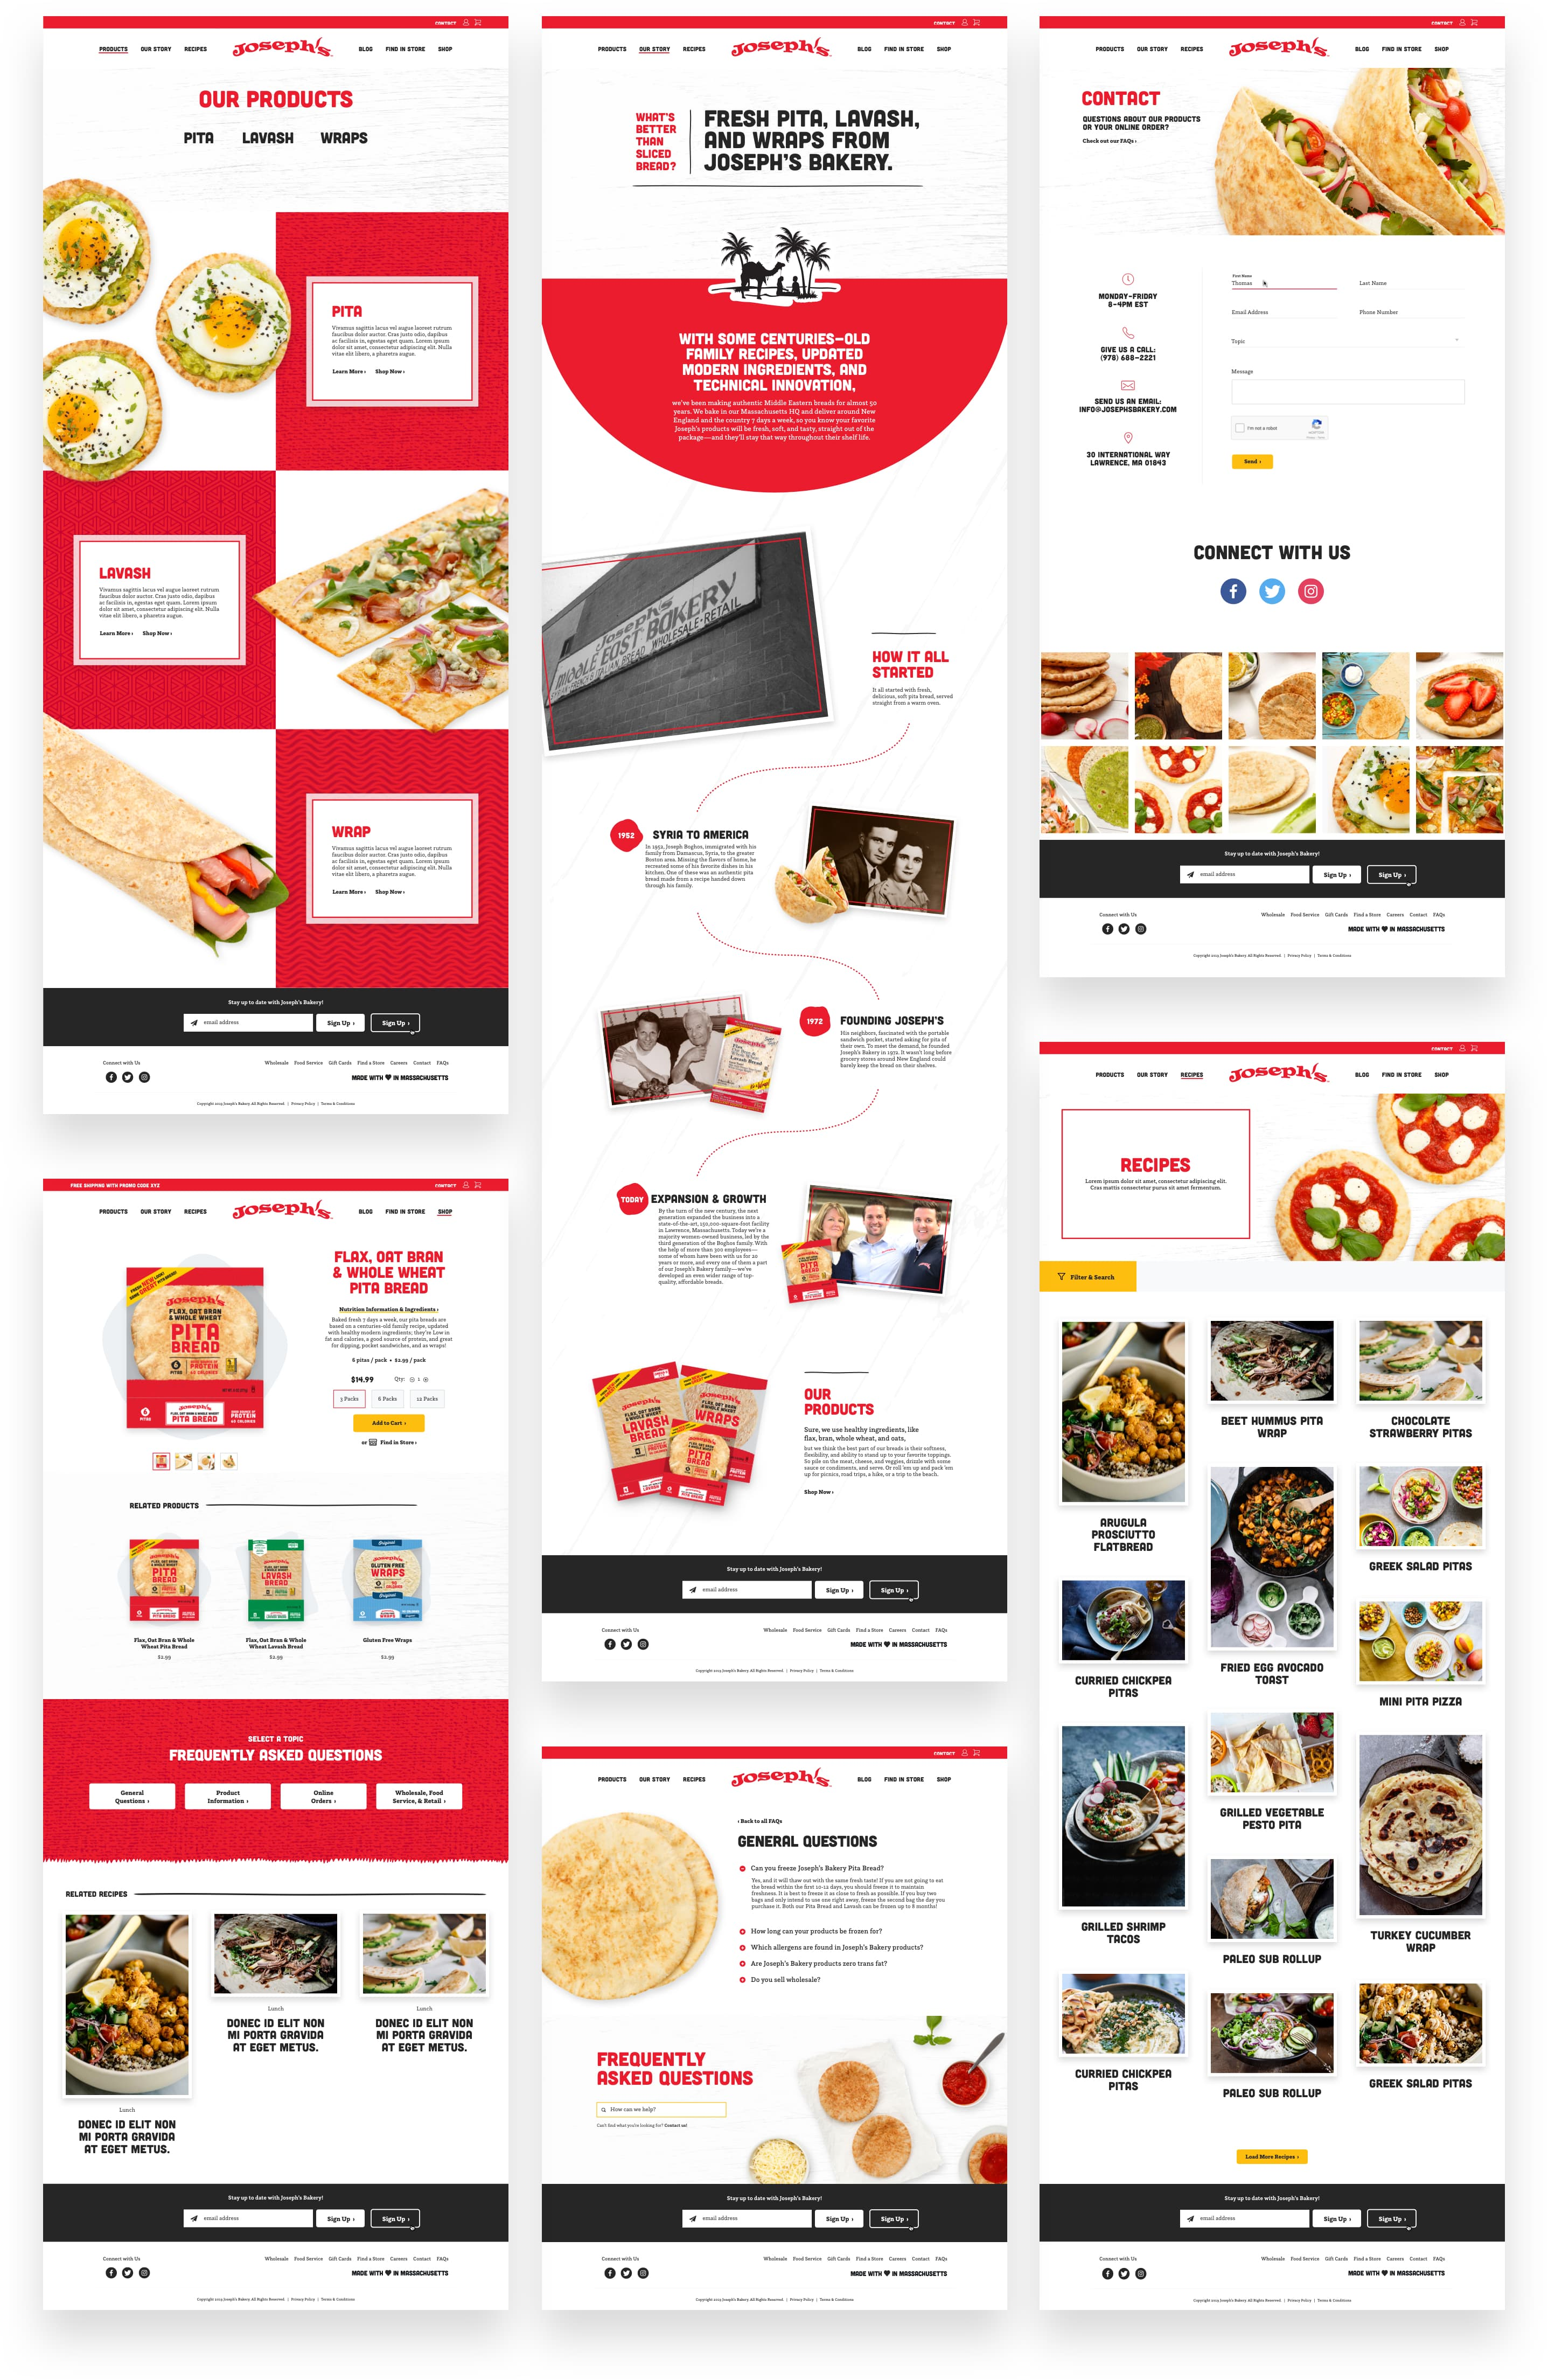 King Design Josephs Bakery Flatbread Lavash Pita Website Design Examples